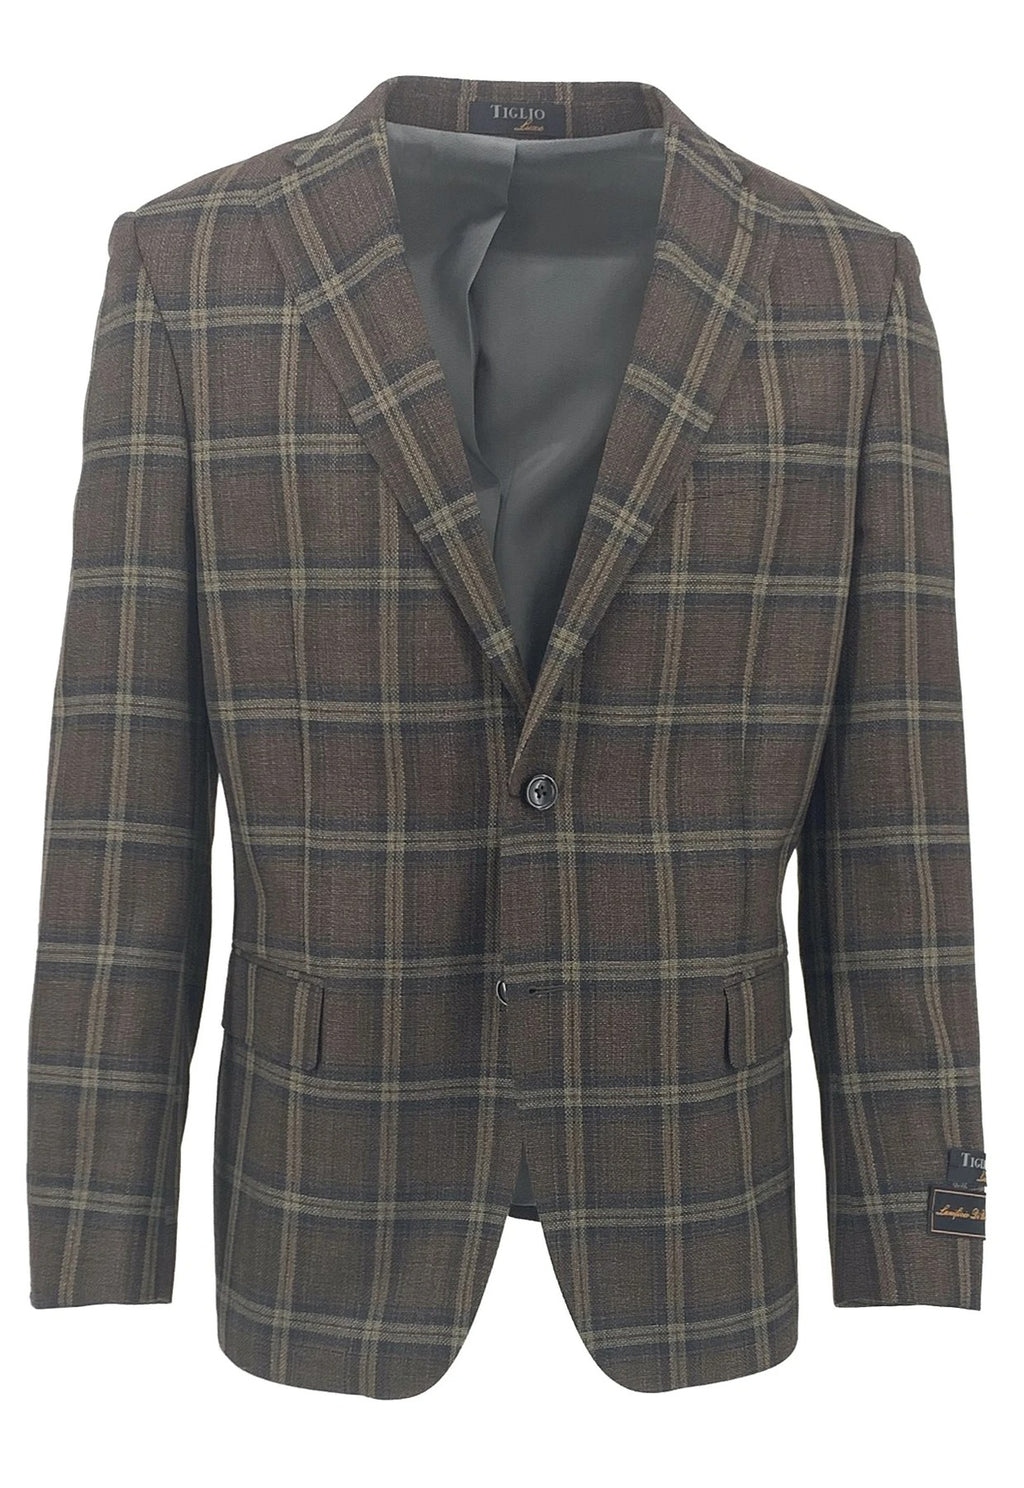 Dolcetto Brown with Taupe and Black Windowpane Modern Fit, Pure Wool Jacket by Tiglio Luxe TLS20046/1